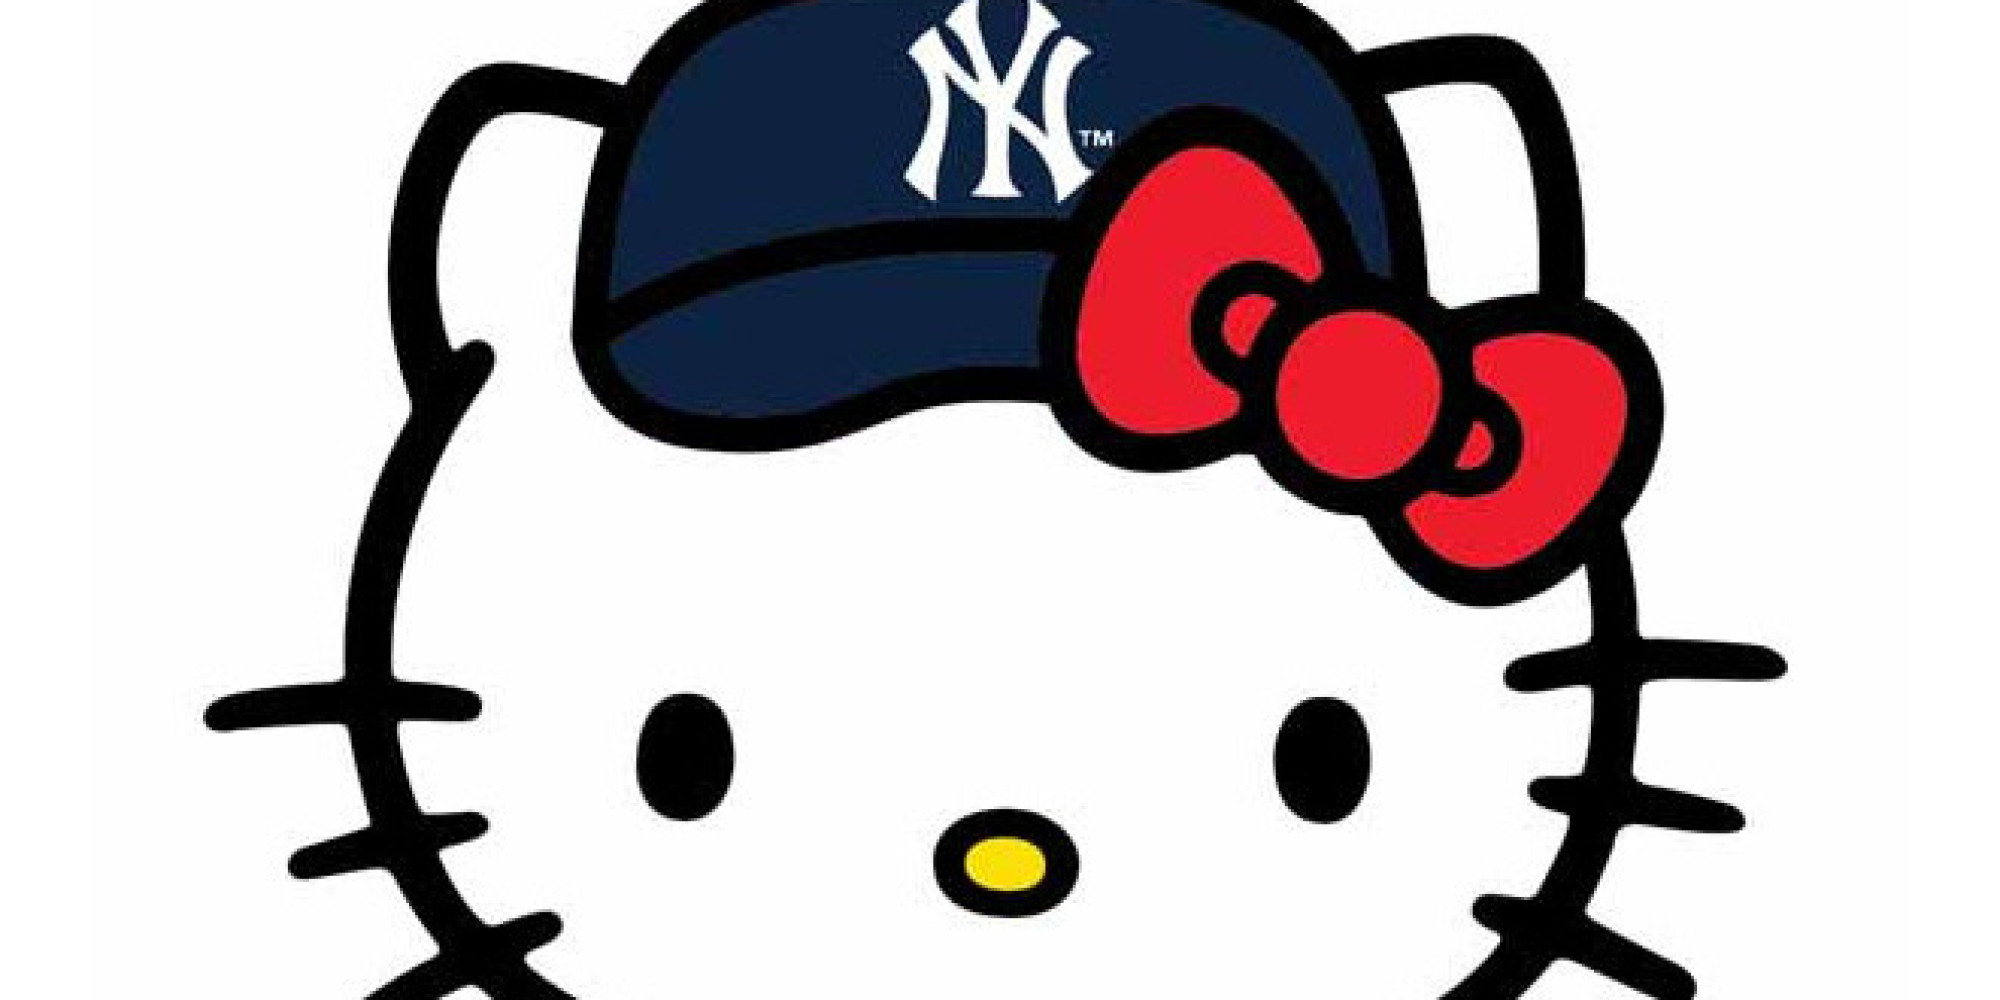 Design your own hello kitty t-shirt - Hello Kitty Mlb Partnership Makes Sure Women Have Cartoons On Their Sportswear